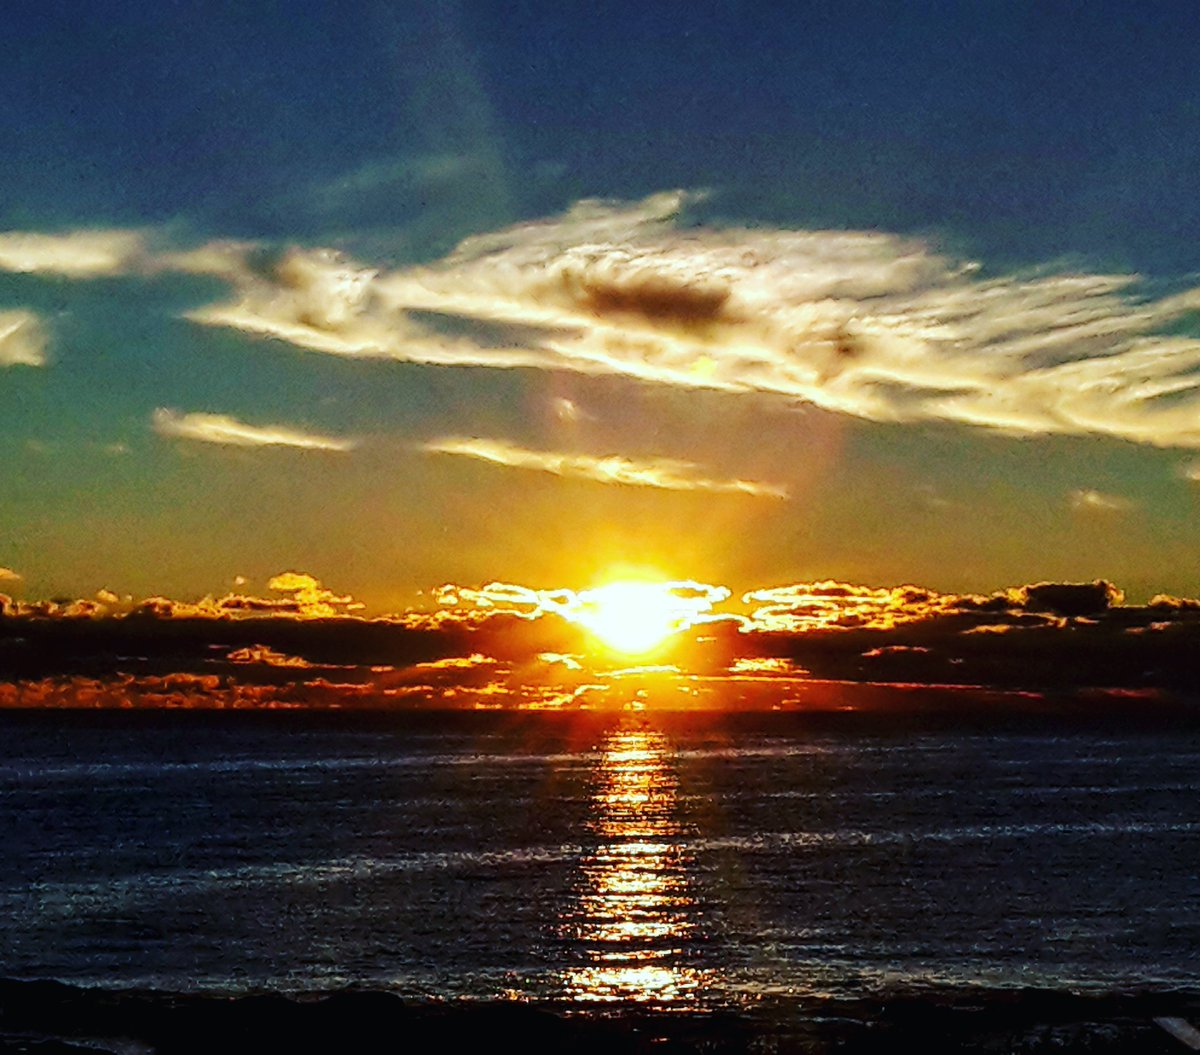 Day 1: #MayIRecommendA2Z I recommend #AtlantisOceanfrontInn #Gloucester, #Massachusetts  ...because of those stunning #sunrises and #oceanview in each room!  Perfect kick off for a #NewEngland #roadTrip!   https://bit.ly/2ybFqrM  @journiesofalife @ExpressionsSA & @live4sightspic.twitter.com/0r8CFWCZSf